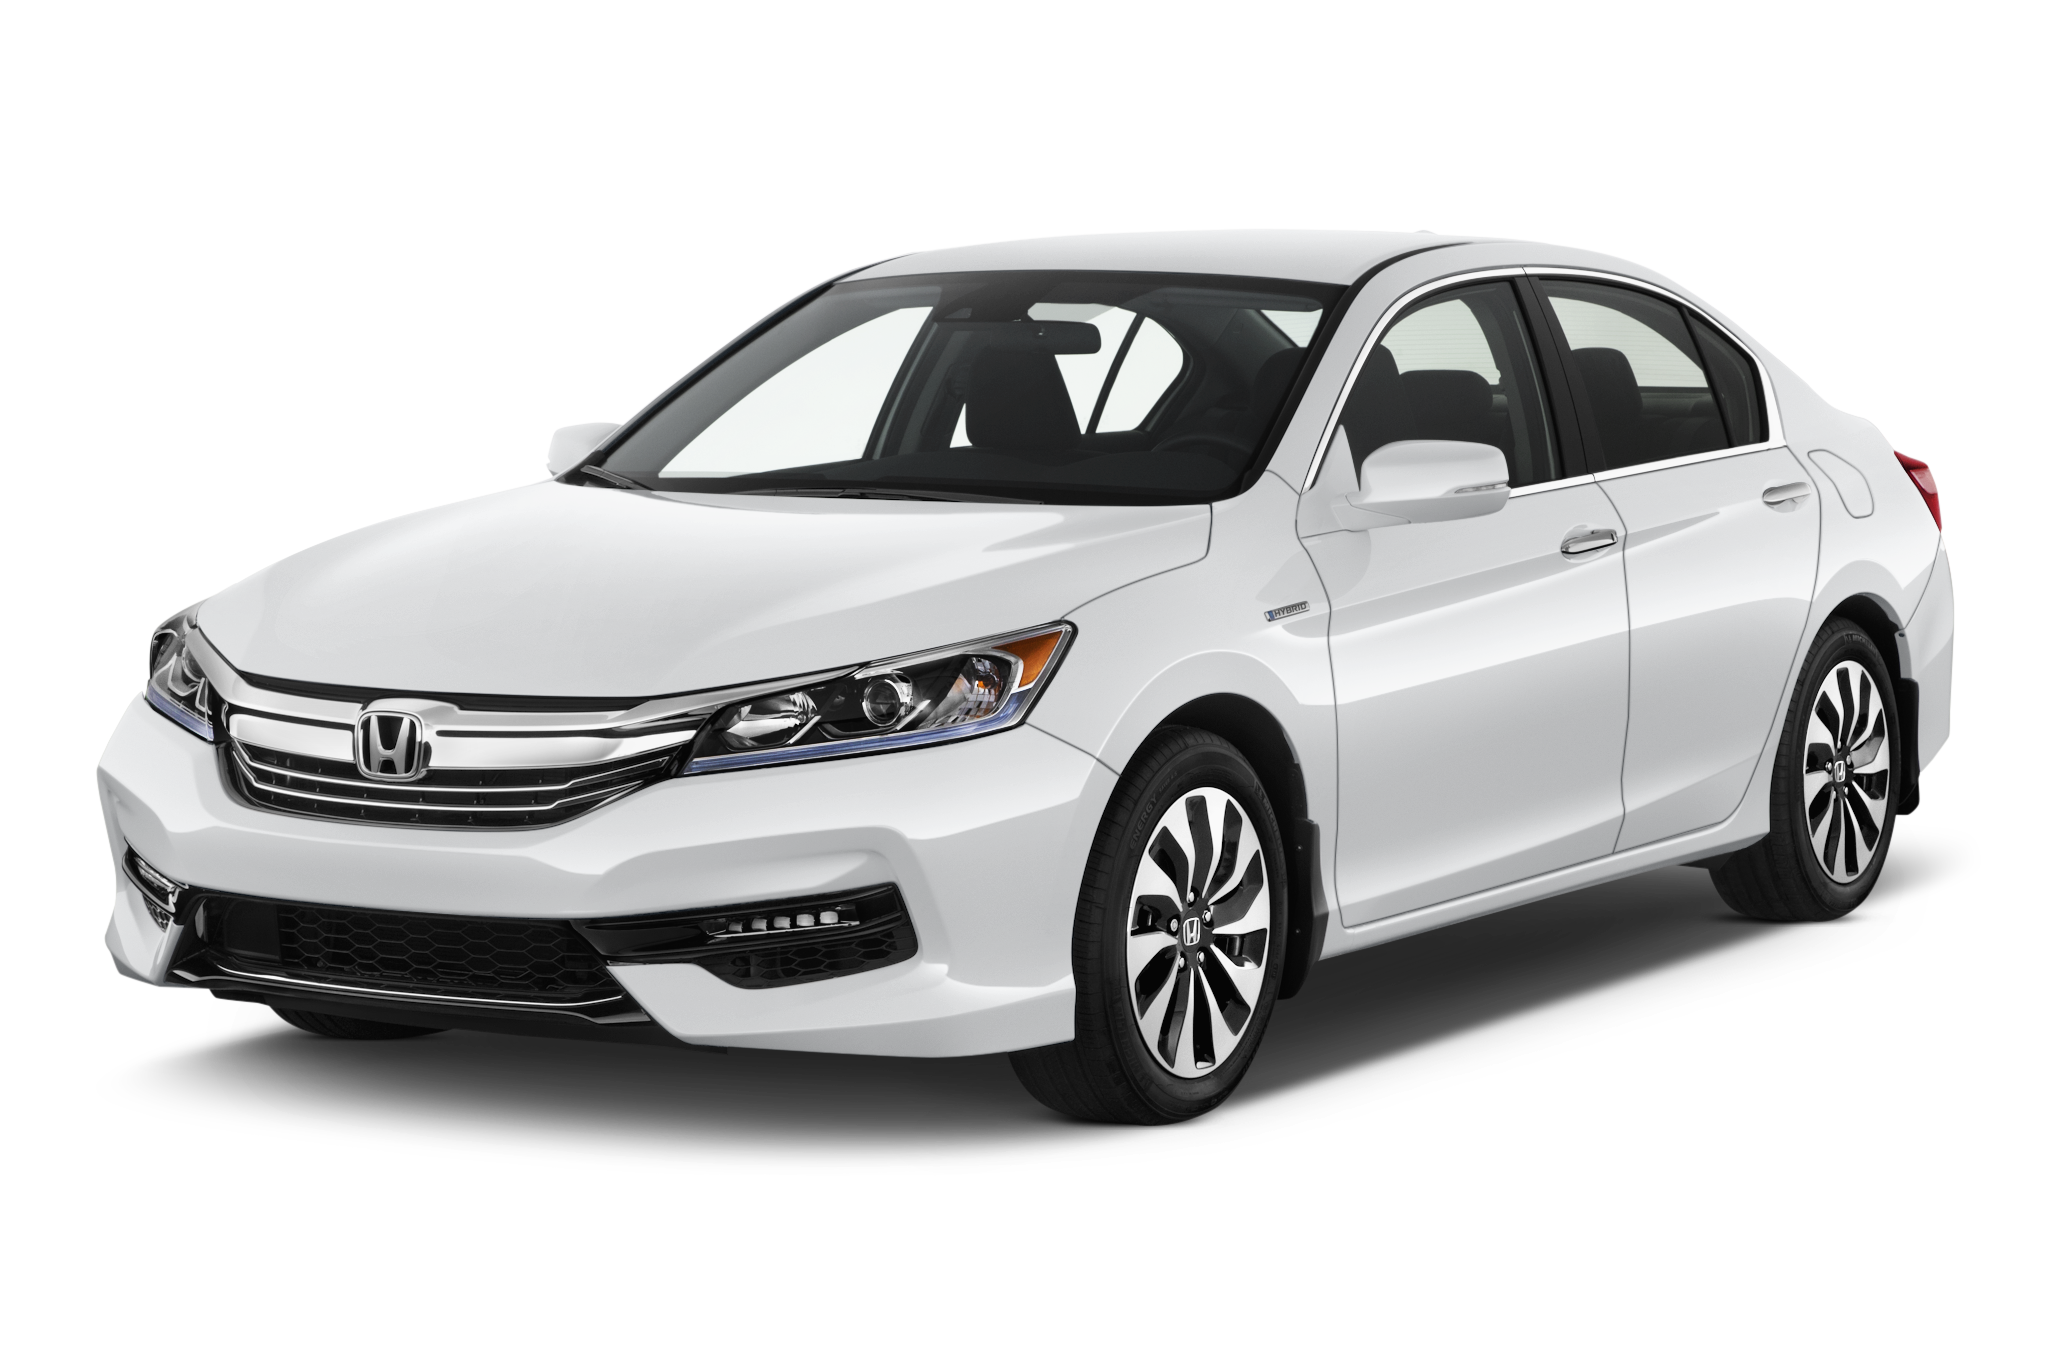 2017 honda accord hybrid gets more power improved. Black Bedroom Furniture Sets. Home Design Ideas